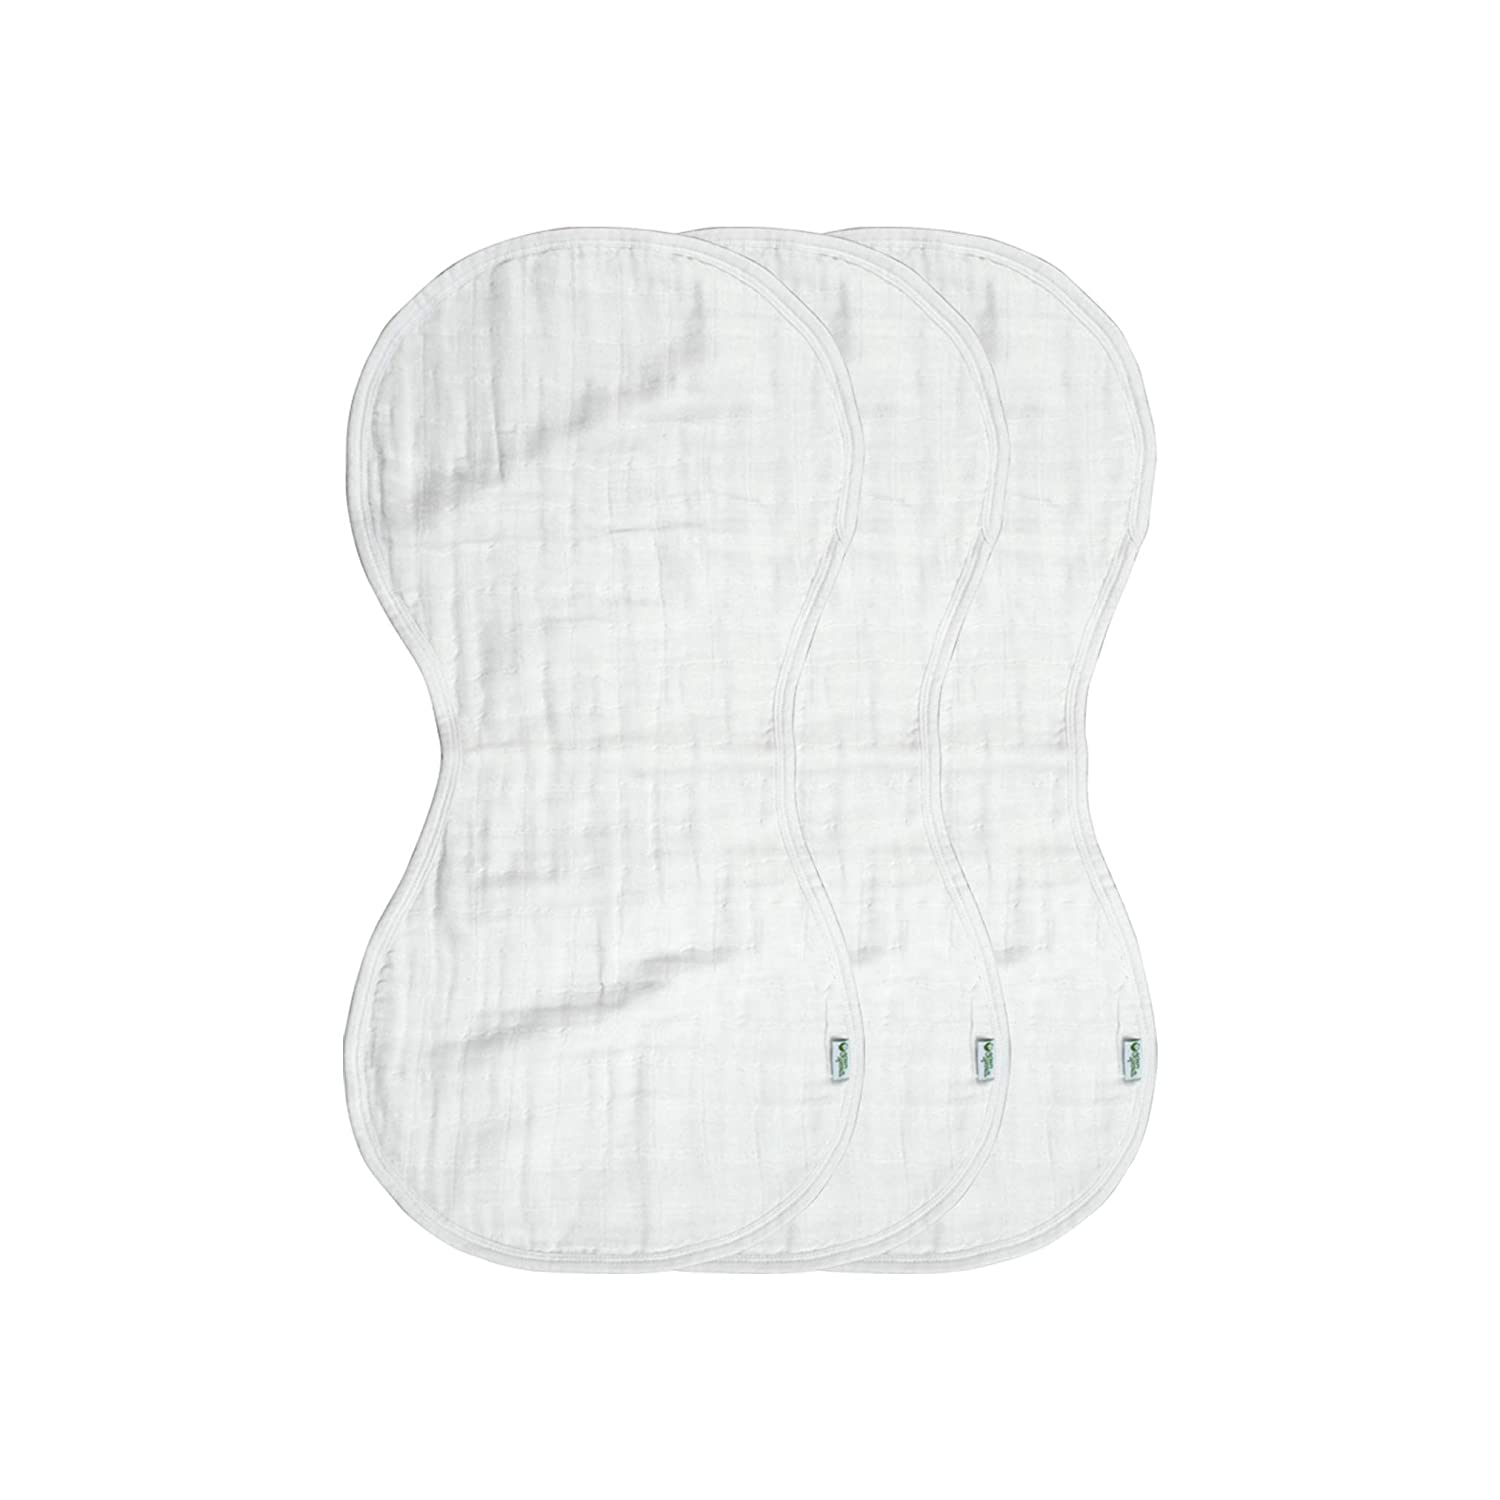 drips /& drools Super soft /& softer with every wash green sprouts Muslin Burp Cloths made from Organic Cotton 4 absorbent layers protect from sniffles 100/% organic cotton muslin Machine washable